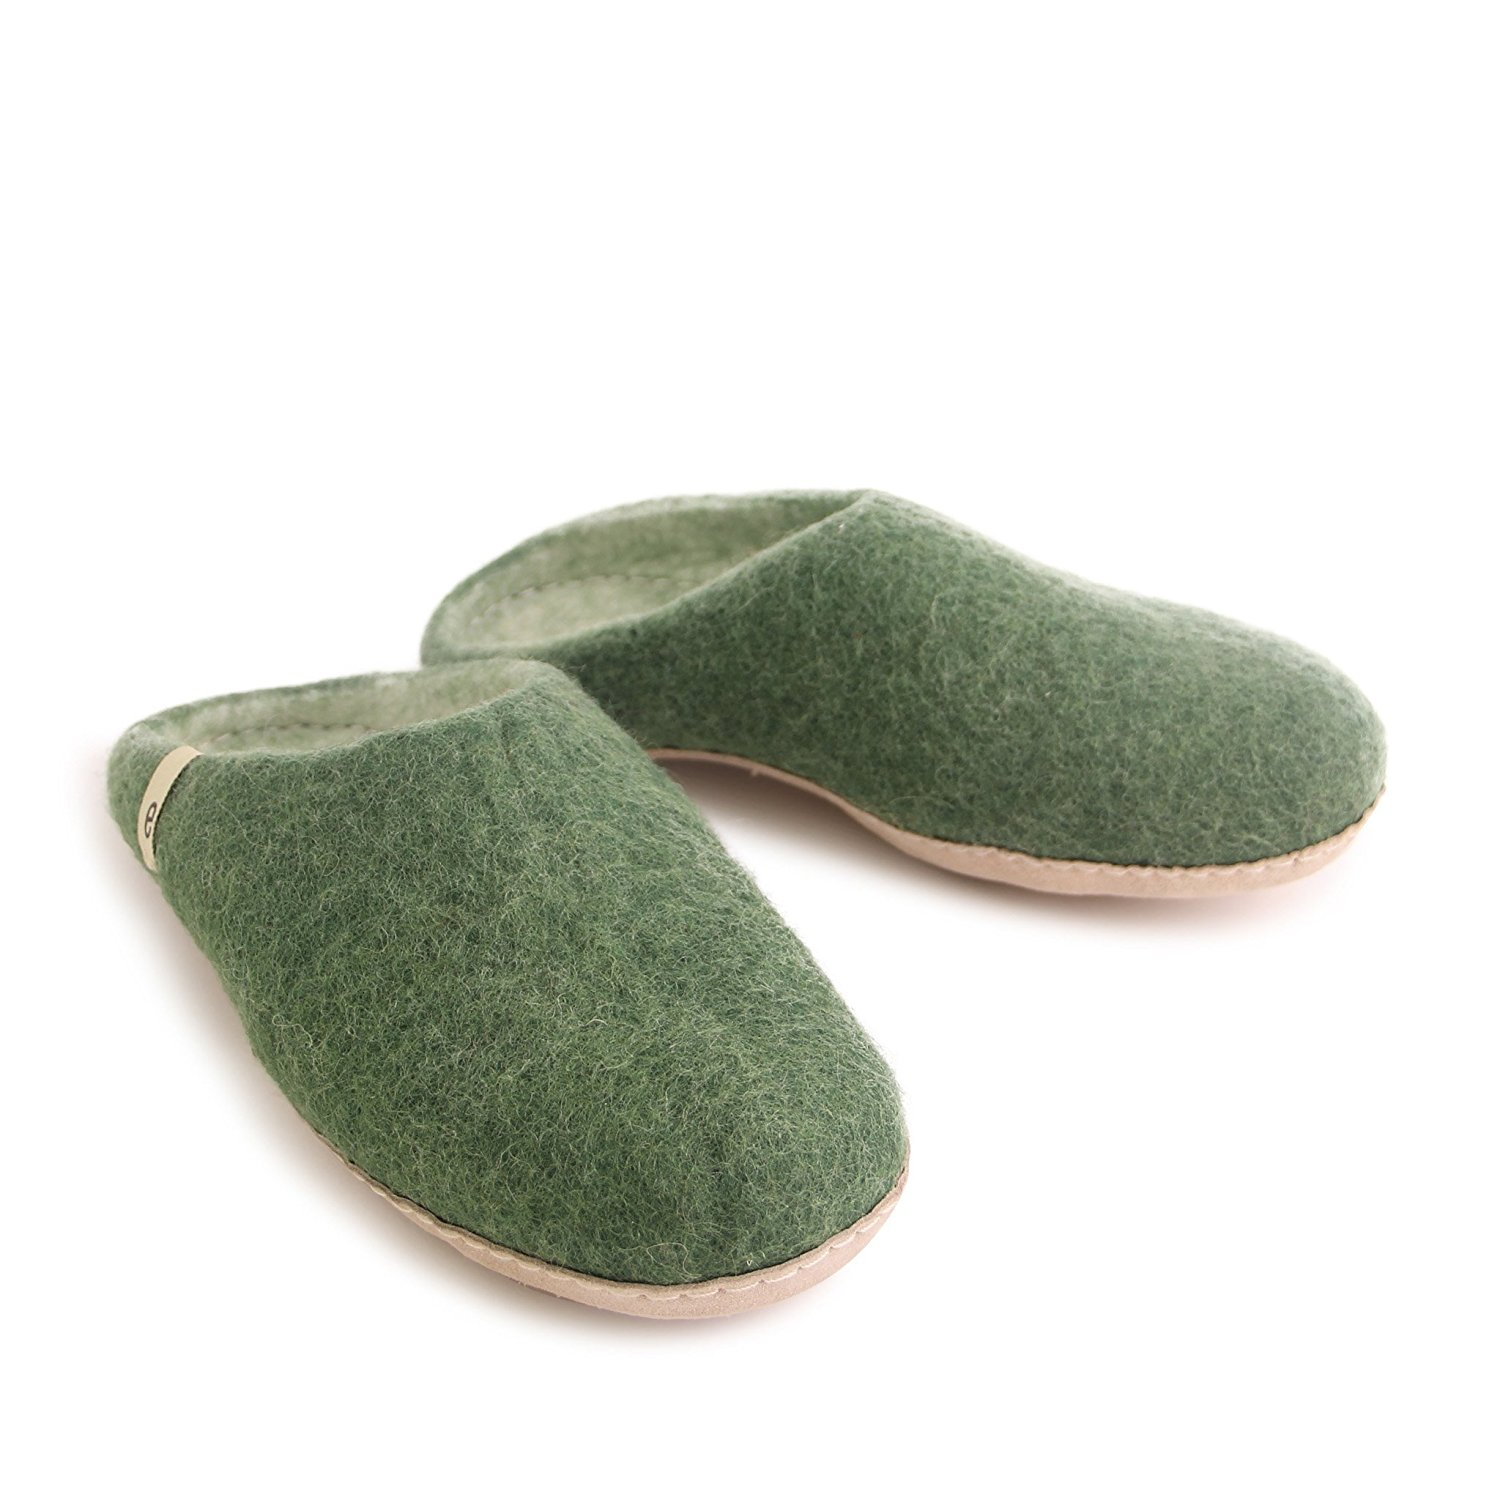 Egos House Slippers: 100% Natural Sheep Wool Handmade Slippers| Warm, Ultra Comfortable & Moisture-Wicking| Deluxe Slip on Slippers with Anti-Skid Leather Sole| Bedroom Slippers for Men, Women & Kids